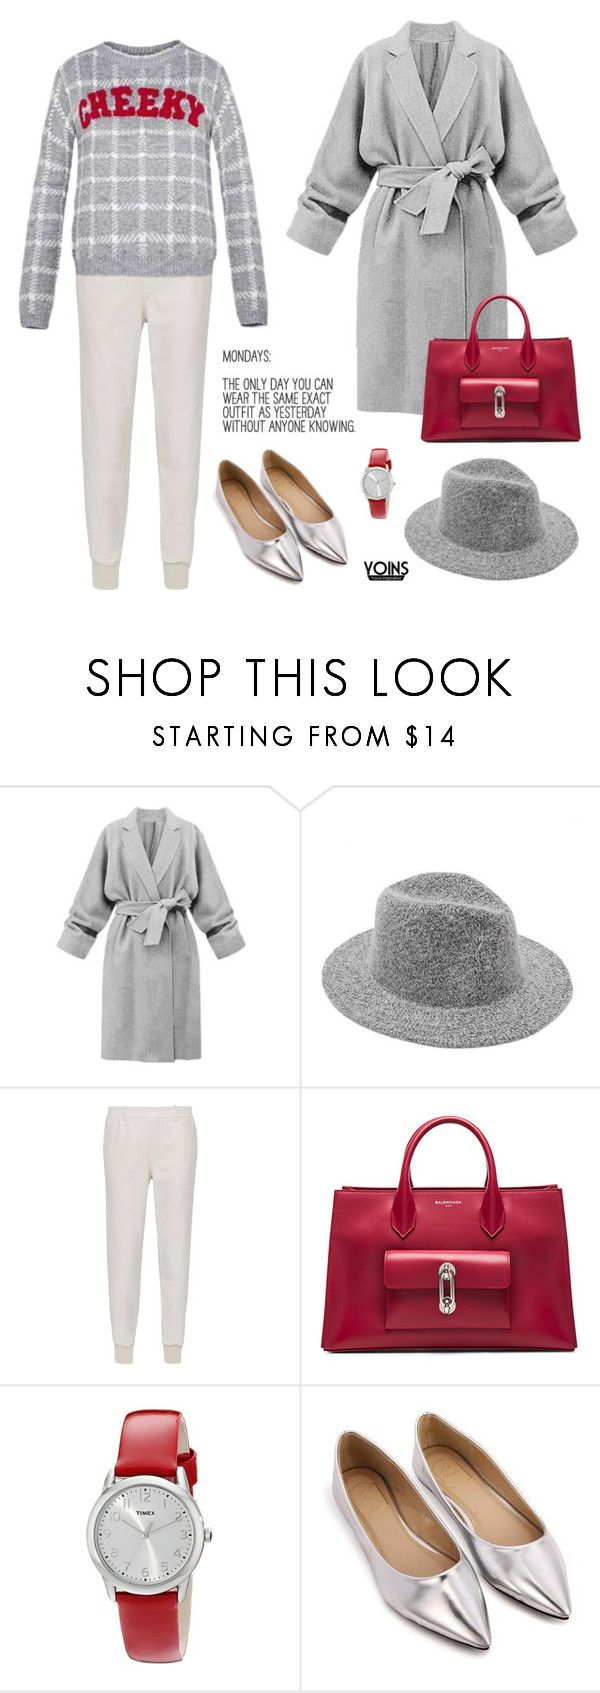 """""""Checked Top Yoins Contest"""" by theoni2009 ❤ liked on Polyvore featuring Vince, Balenciaga, Timex and yoins"""